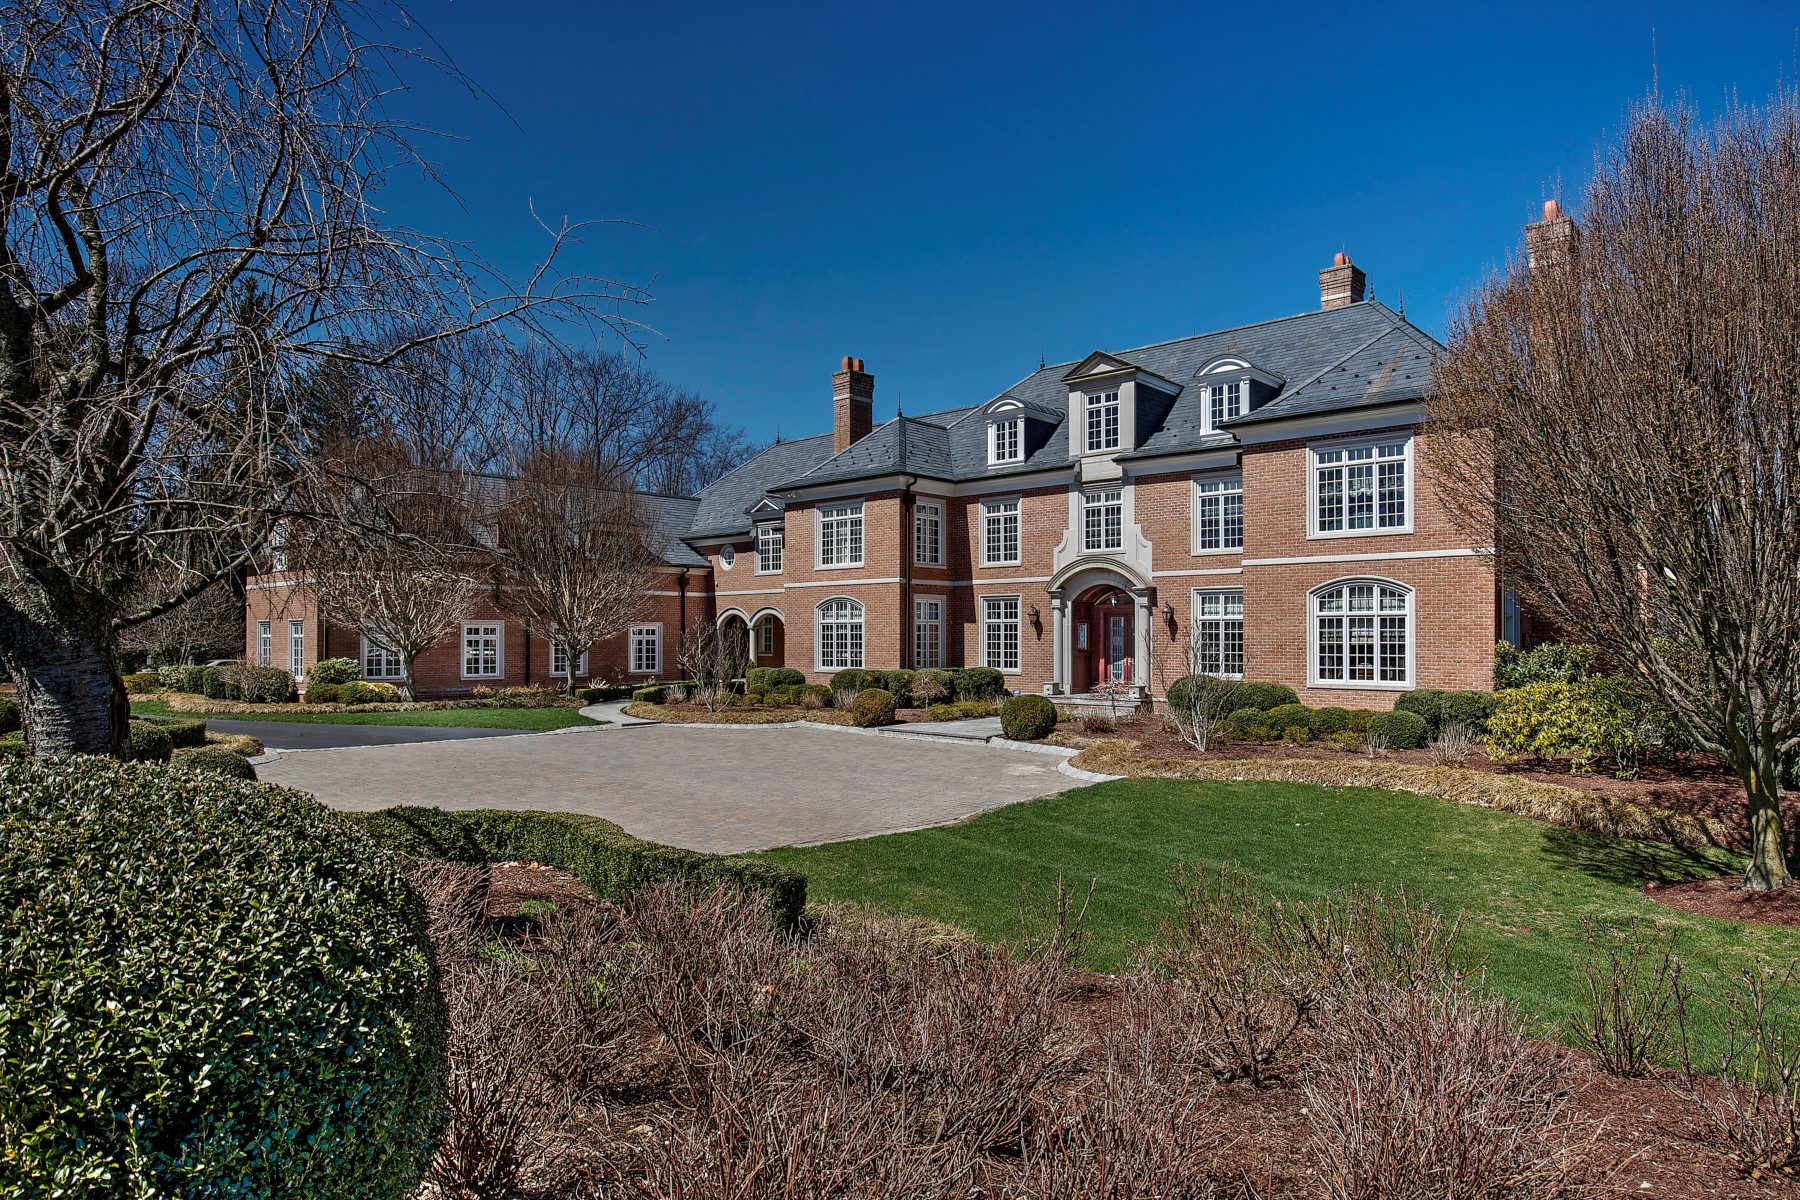 Single Family Home for Sale at Mountain Top Manor 141 Mountain Top Road Bernardsville, New Jersey 07924 United States